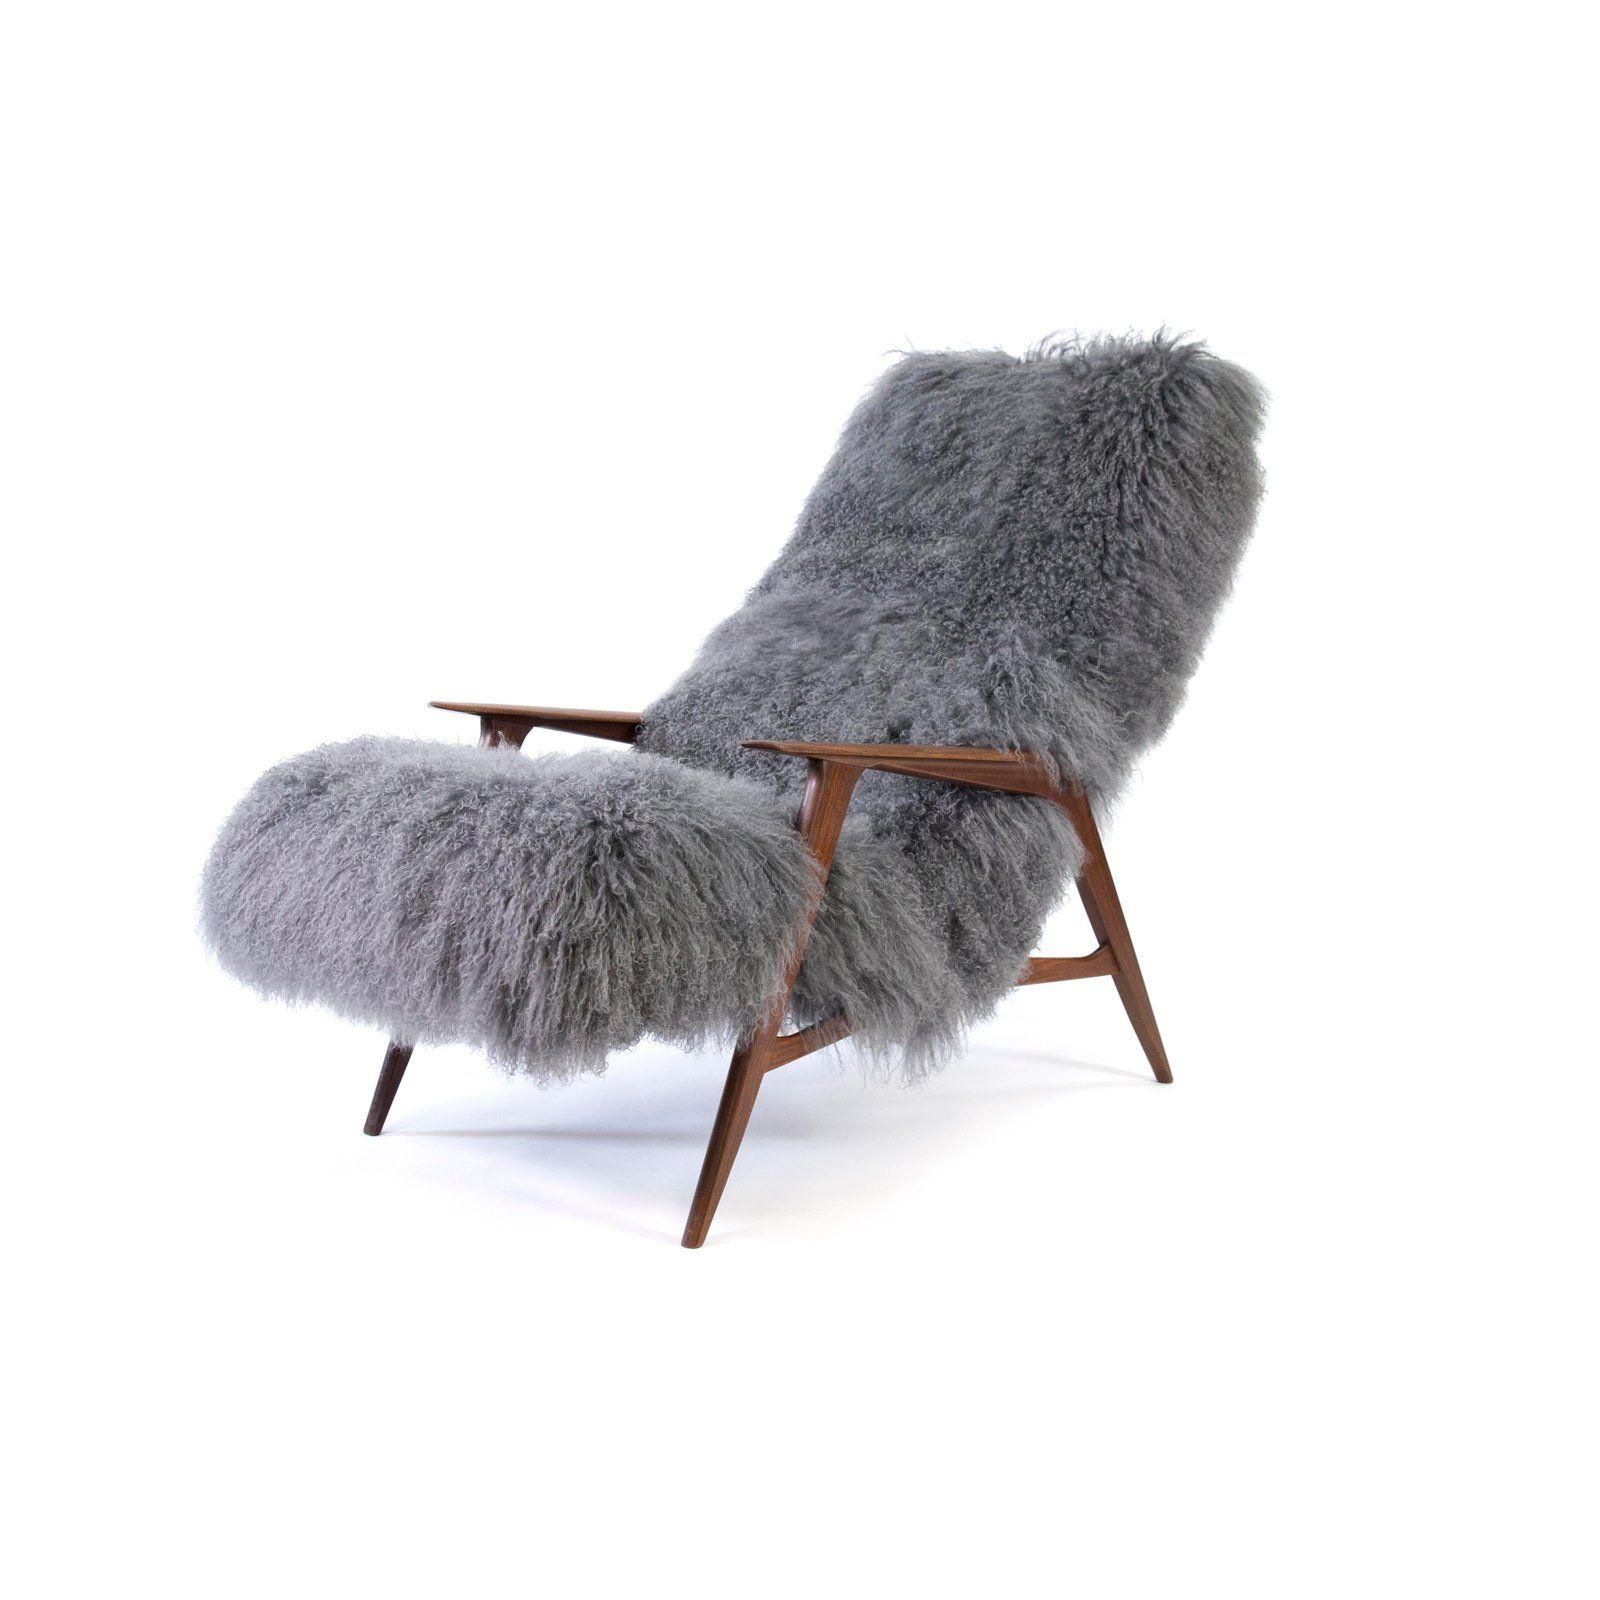 Miraculous Jio Mobler Siesta Chair In Mongolian Sheepskin In 2019 Gmtry Best Dining Table And Chair Ideas Images Gmtryco